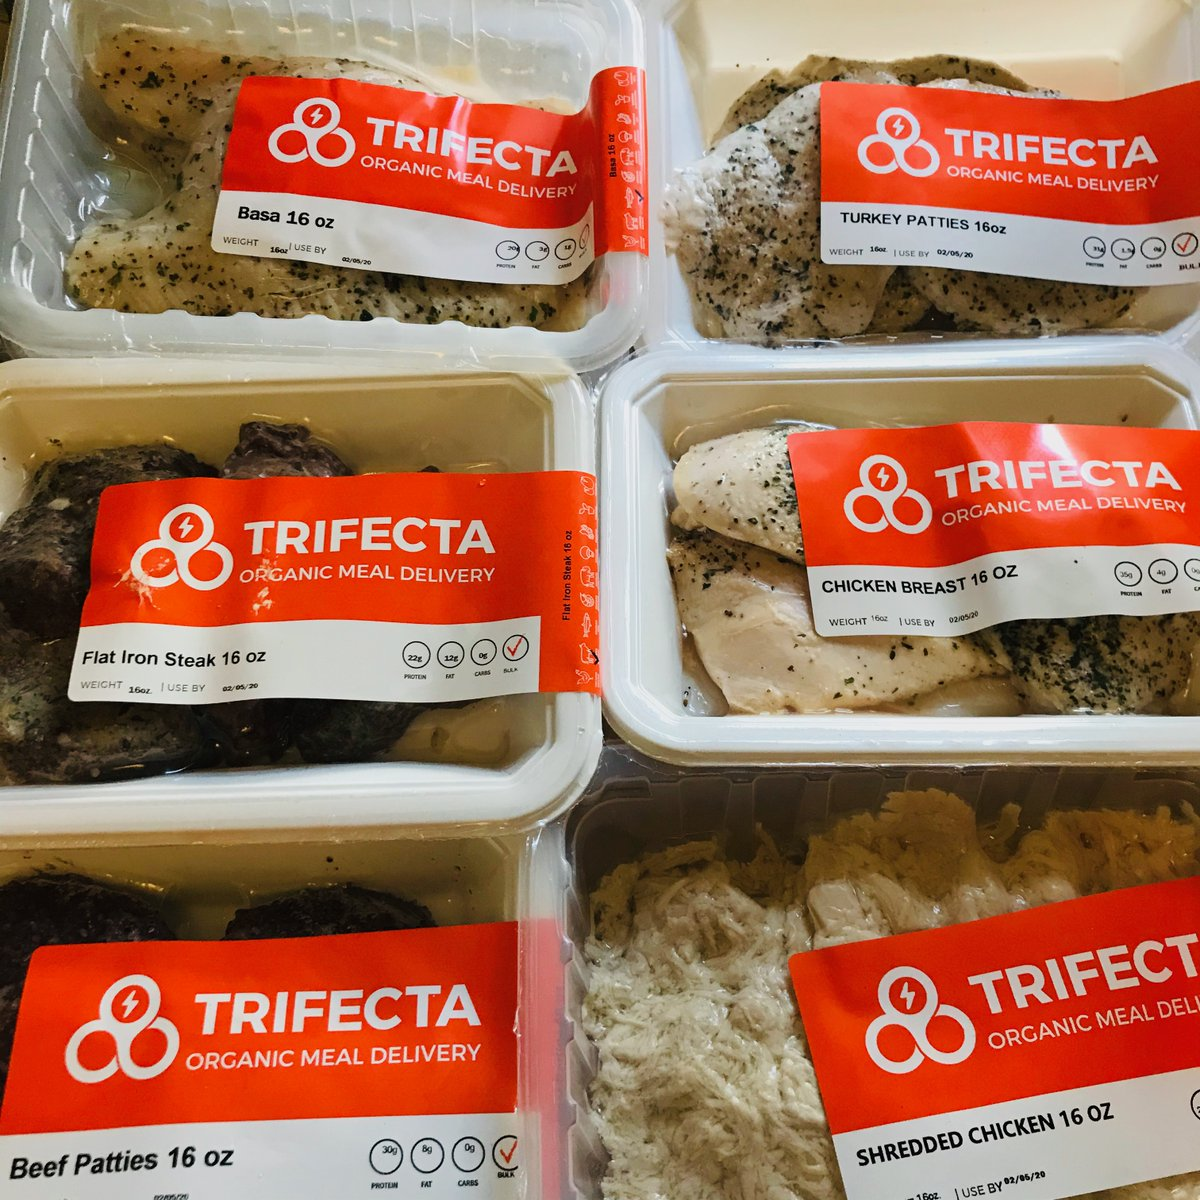 Last chance for 40% off & FREE chicken for life from @TrifectaSystem .  Use code: 2020Chicken   :-) Check it out:   https://trifectanutrition.com/lmwbxr #mealPrep,#cleaneating,#GRAMMYs  ,#weekend,#sale,#fitspo,#HealthyLivingpic.twitter.com/MbS46jGxj6